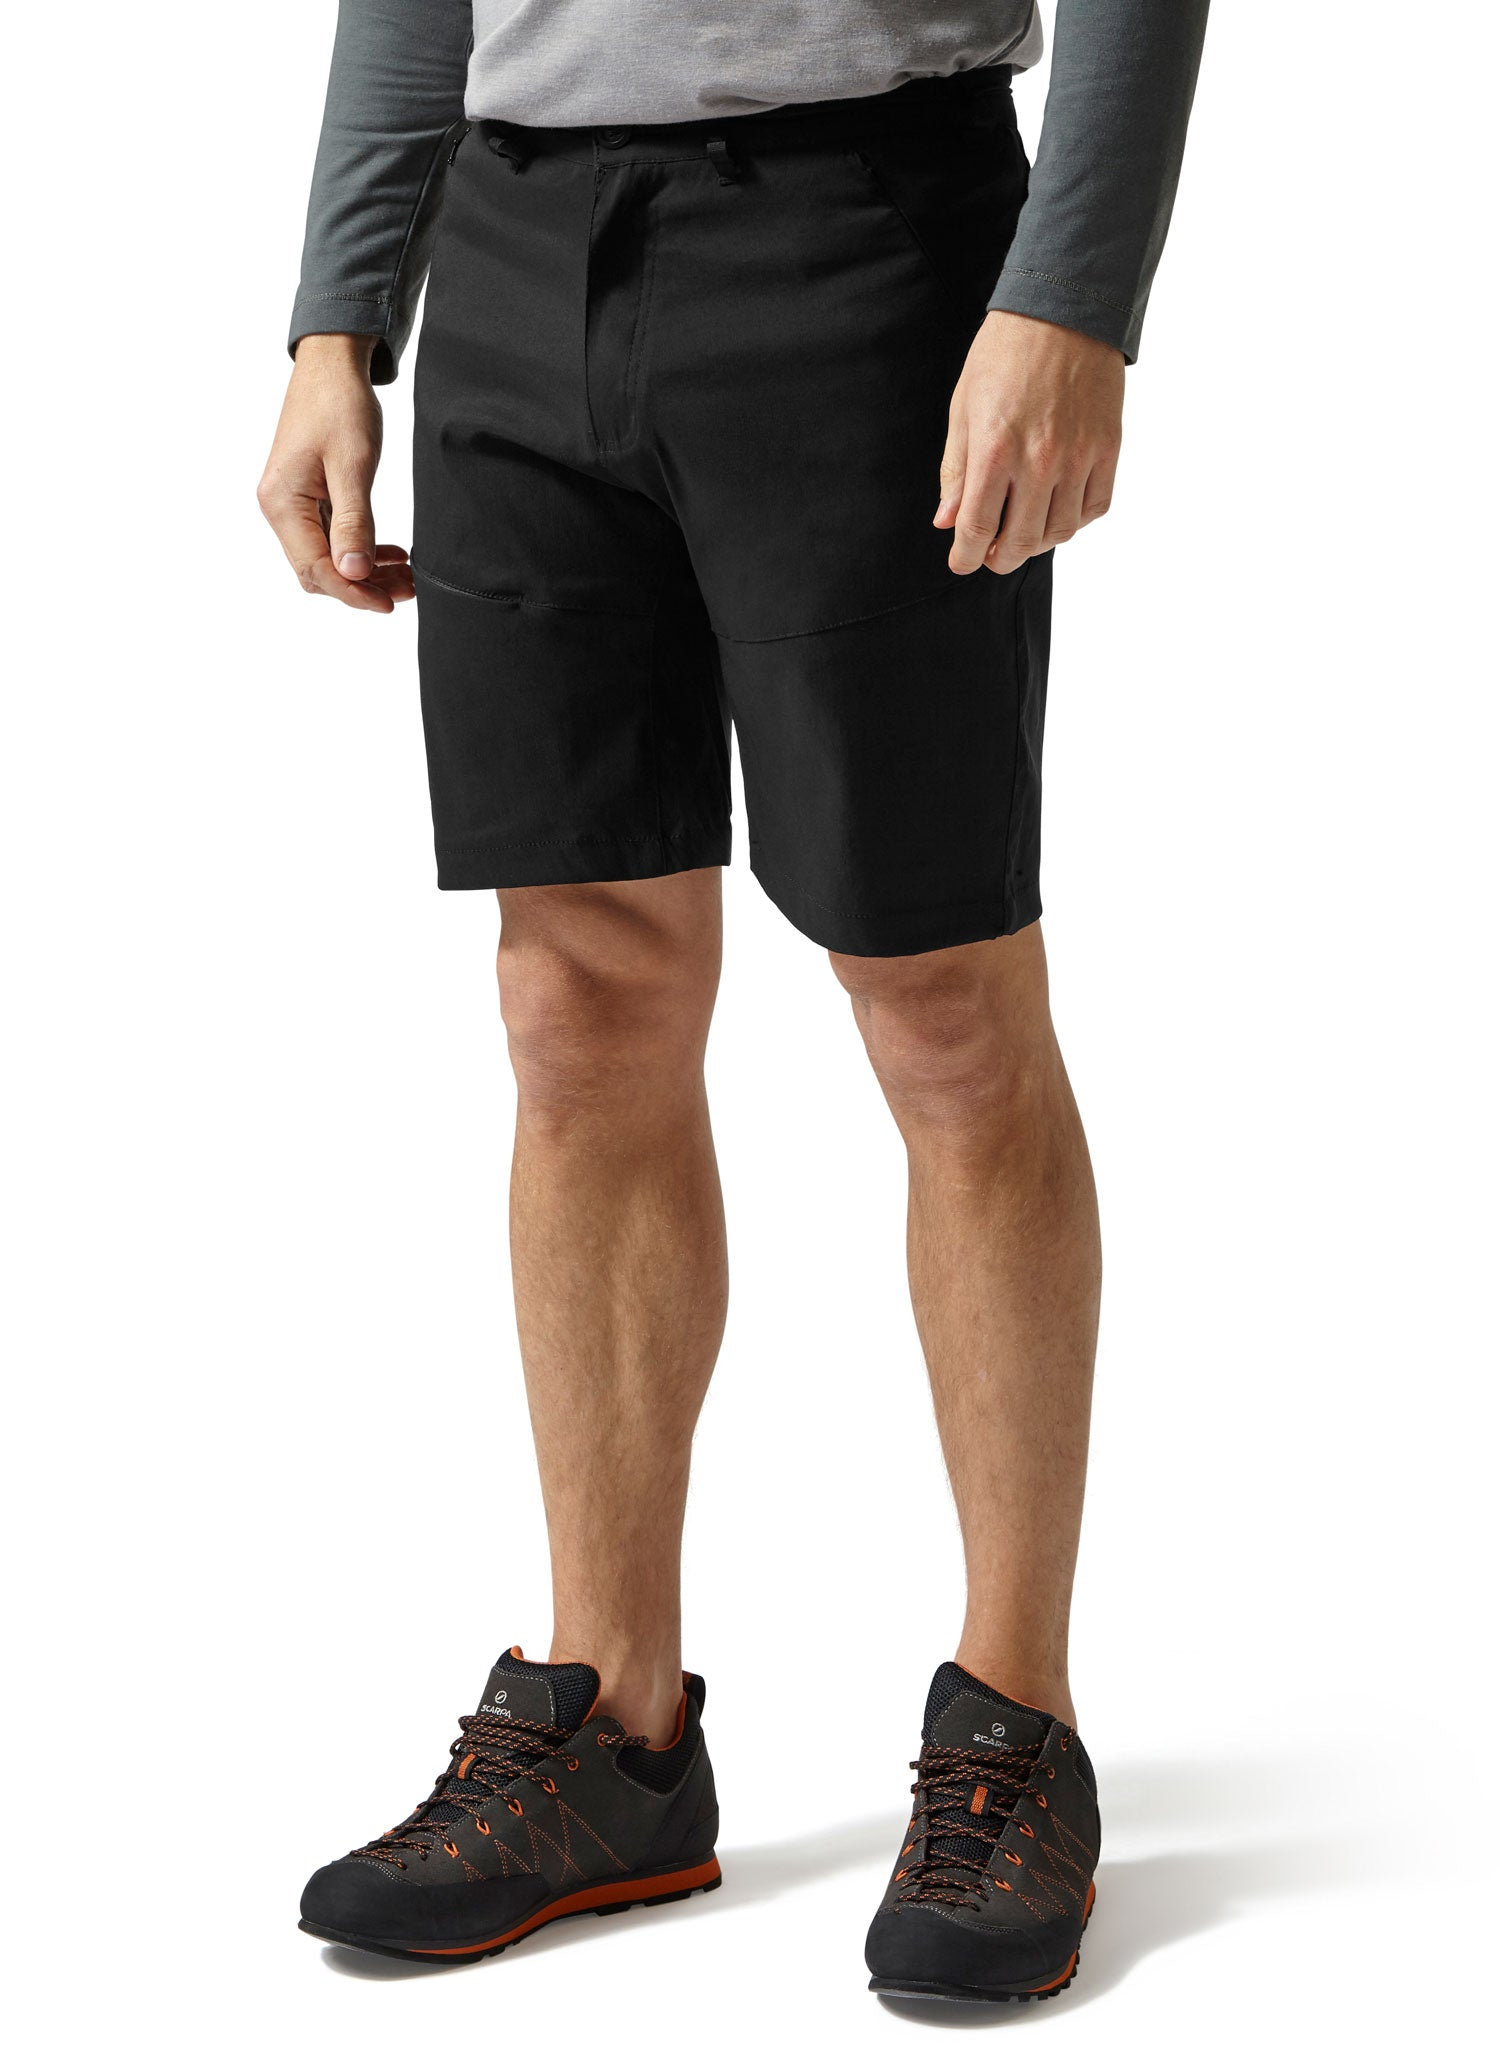 Black outdoors shorts